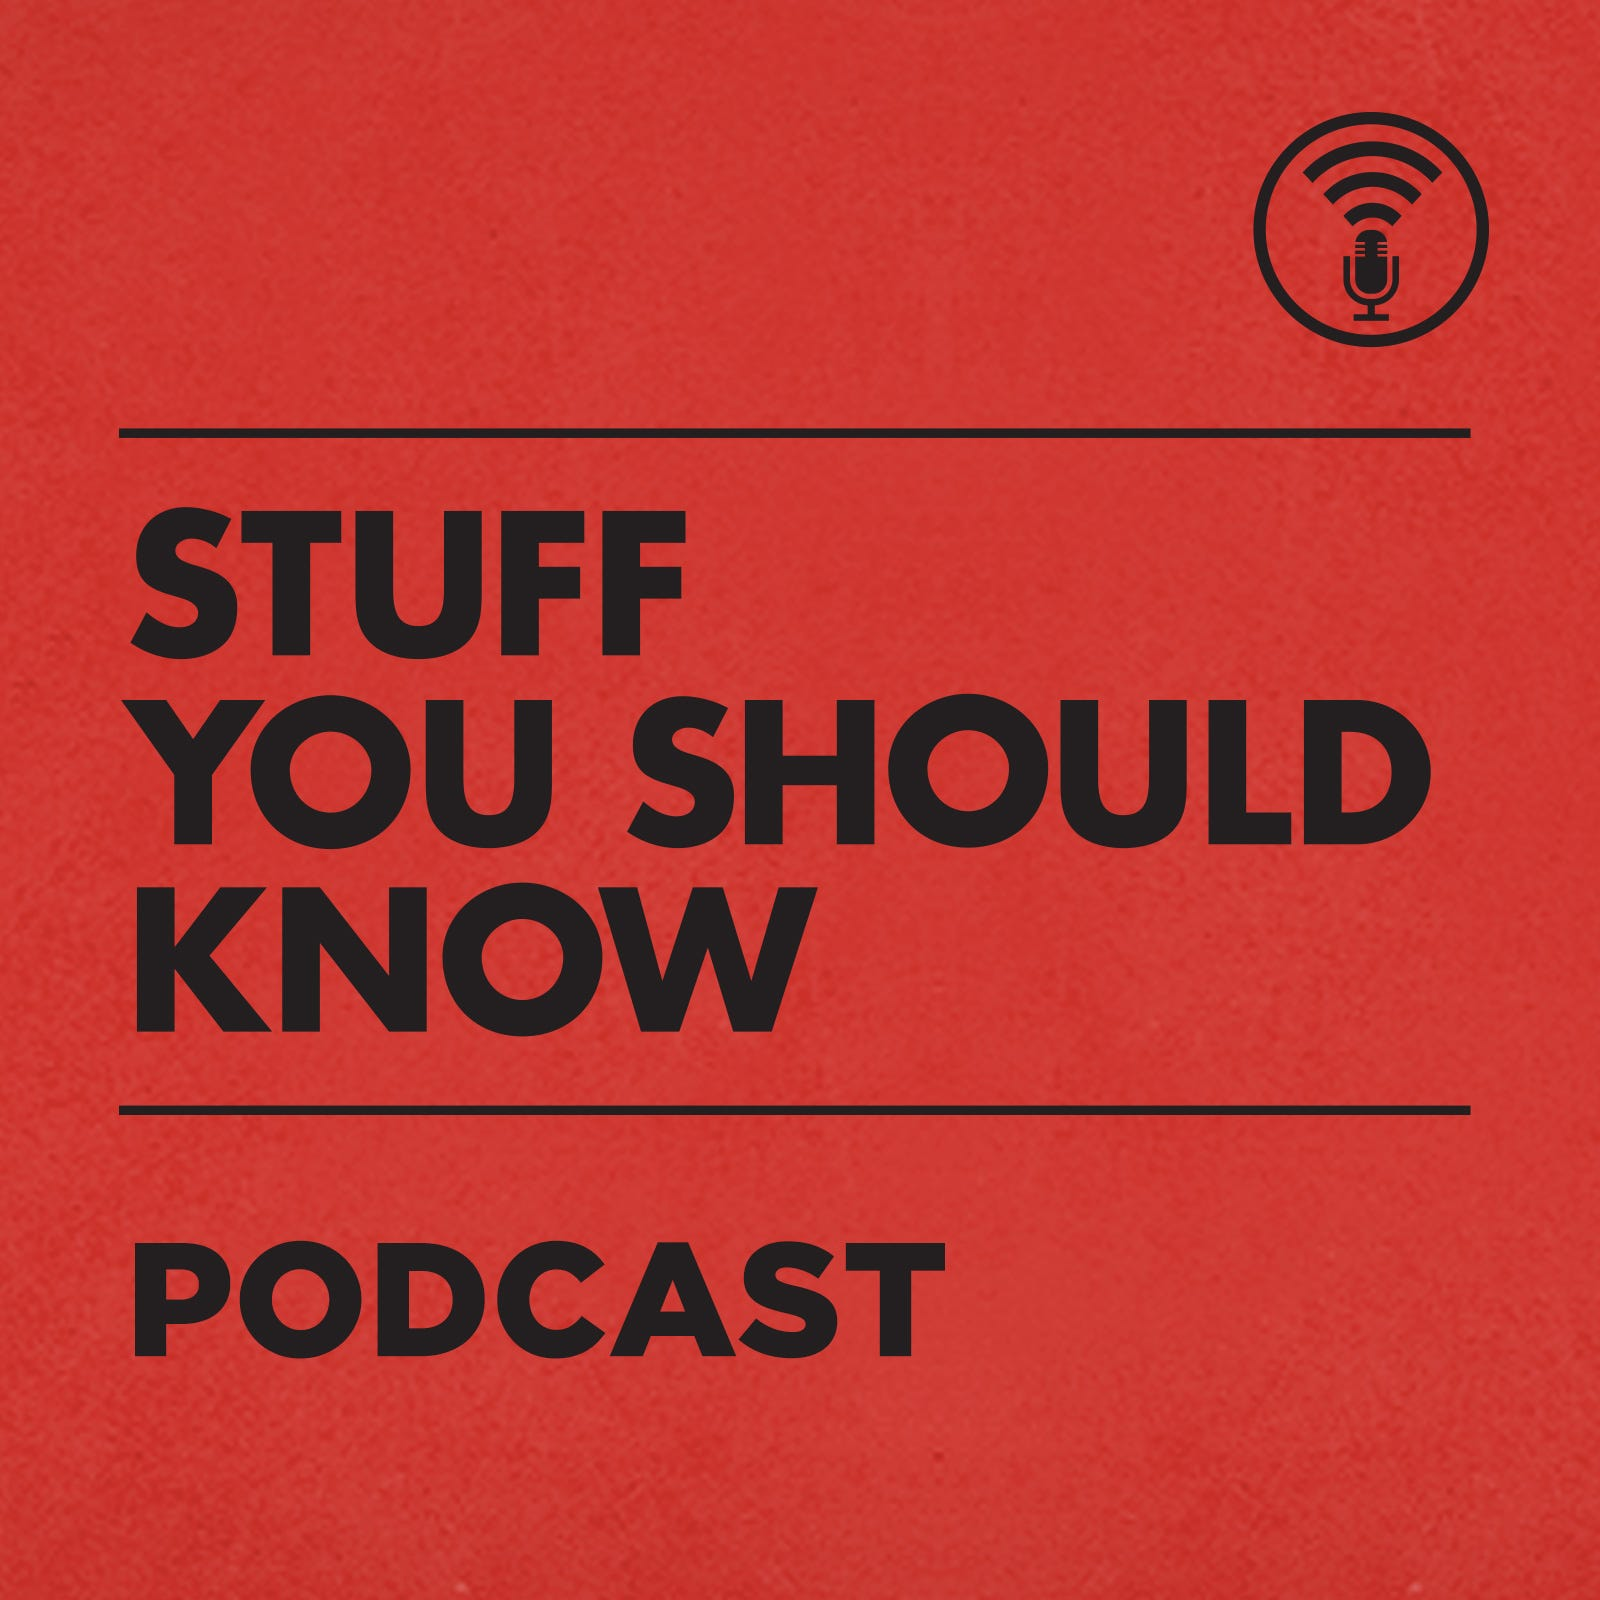 Best Educational Podcasts That Make You Smarter 2018